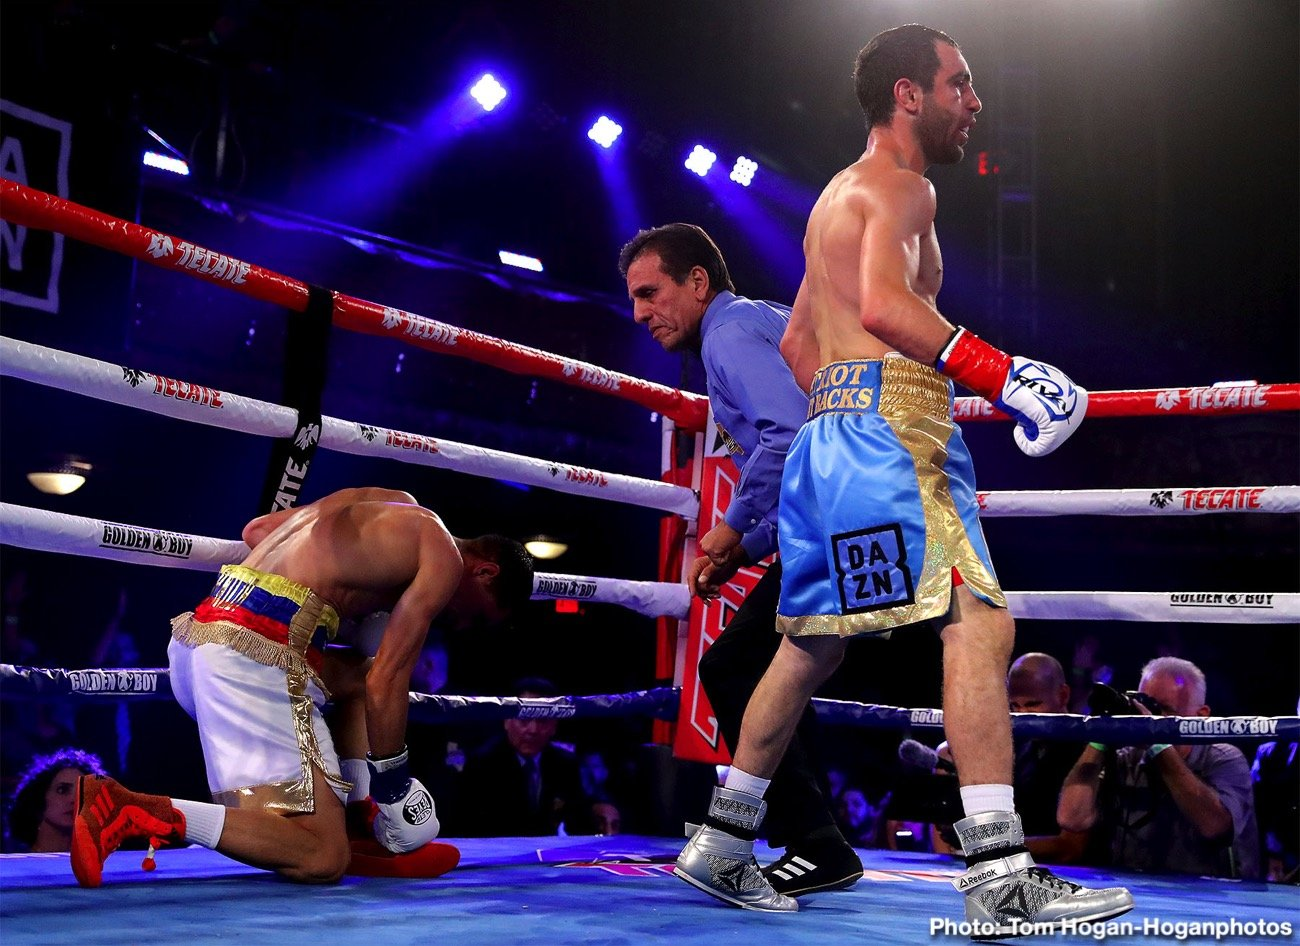 Franklin Manzanilla - Explosive Armenian contender Azat 'Crazy A' Hovhannisyan (18-3, 15 KOs) earned a shot at the WBA Super Bantamweight World Title by defeating Franklin Manzanilla (18-6, 17 KOs) of Caracas, Venezuela via knockout at 2:58 of the fourth round of a scheduled 12-round eliminator fight in the main event of the Sept. 5 edition of Golden Boy DAZN Thursday Night Fights at the Belasco Theater in Los Angeles. The event was streamed live on RingTV.com and on Facebook Watch via the Golden Boy Fight Night Page. The series is also available on regional sports networks around the nation.